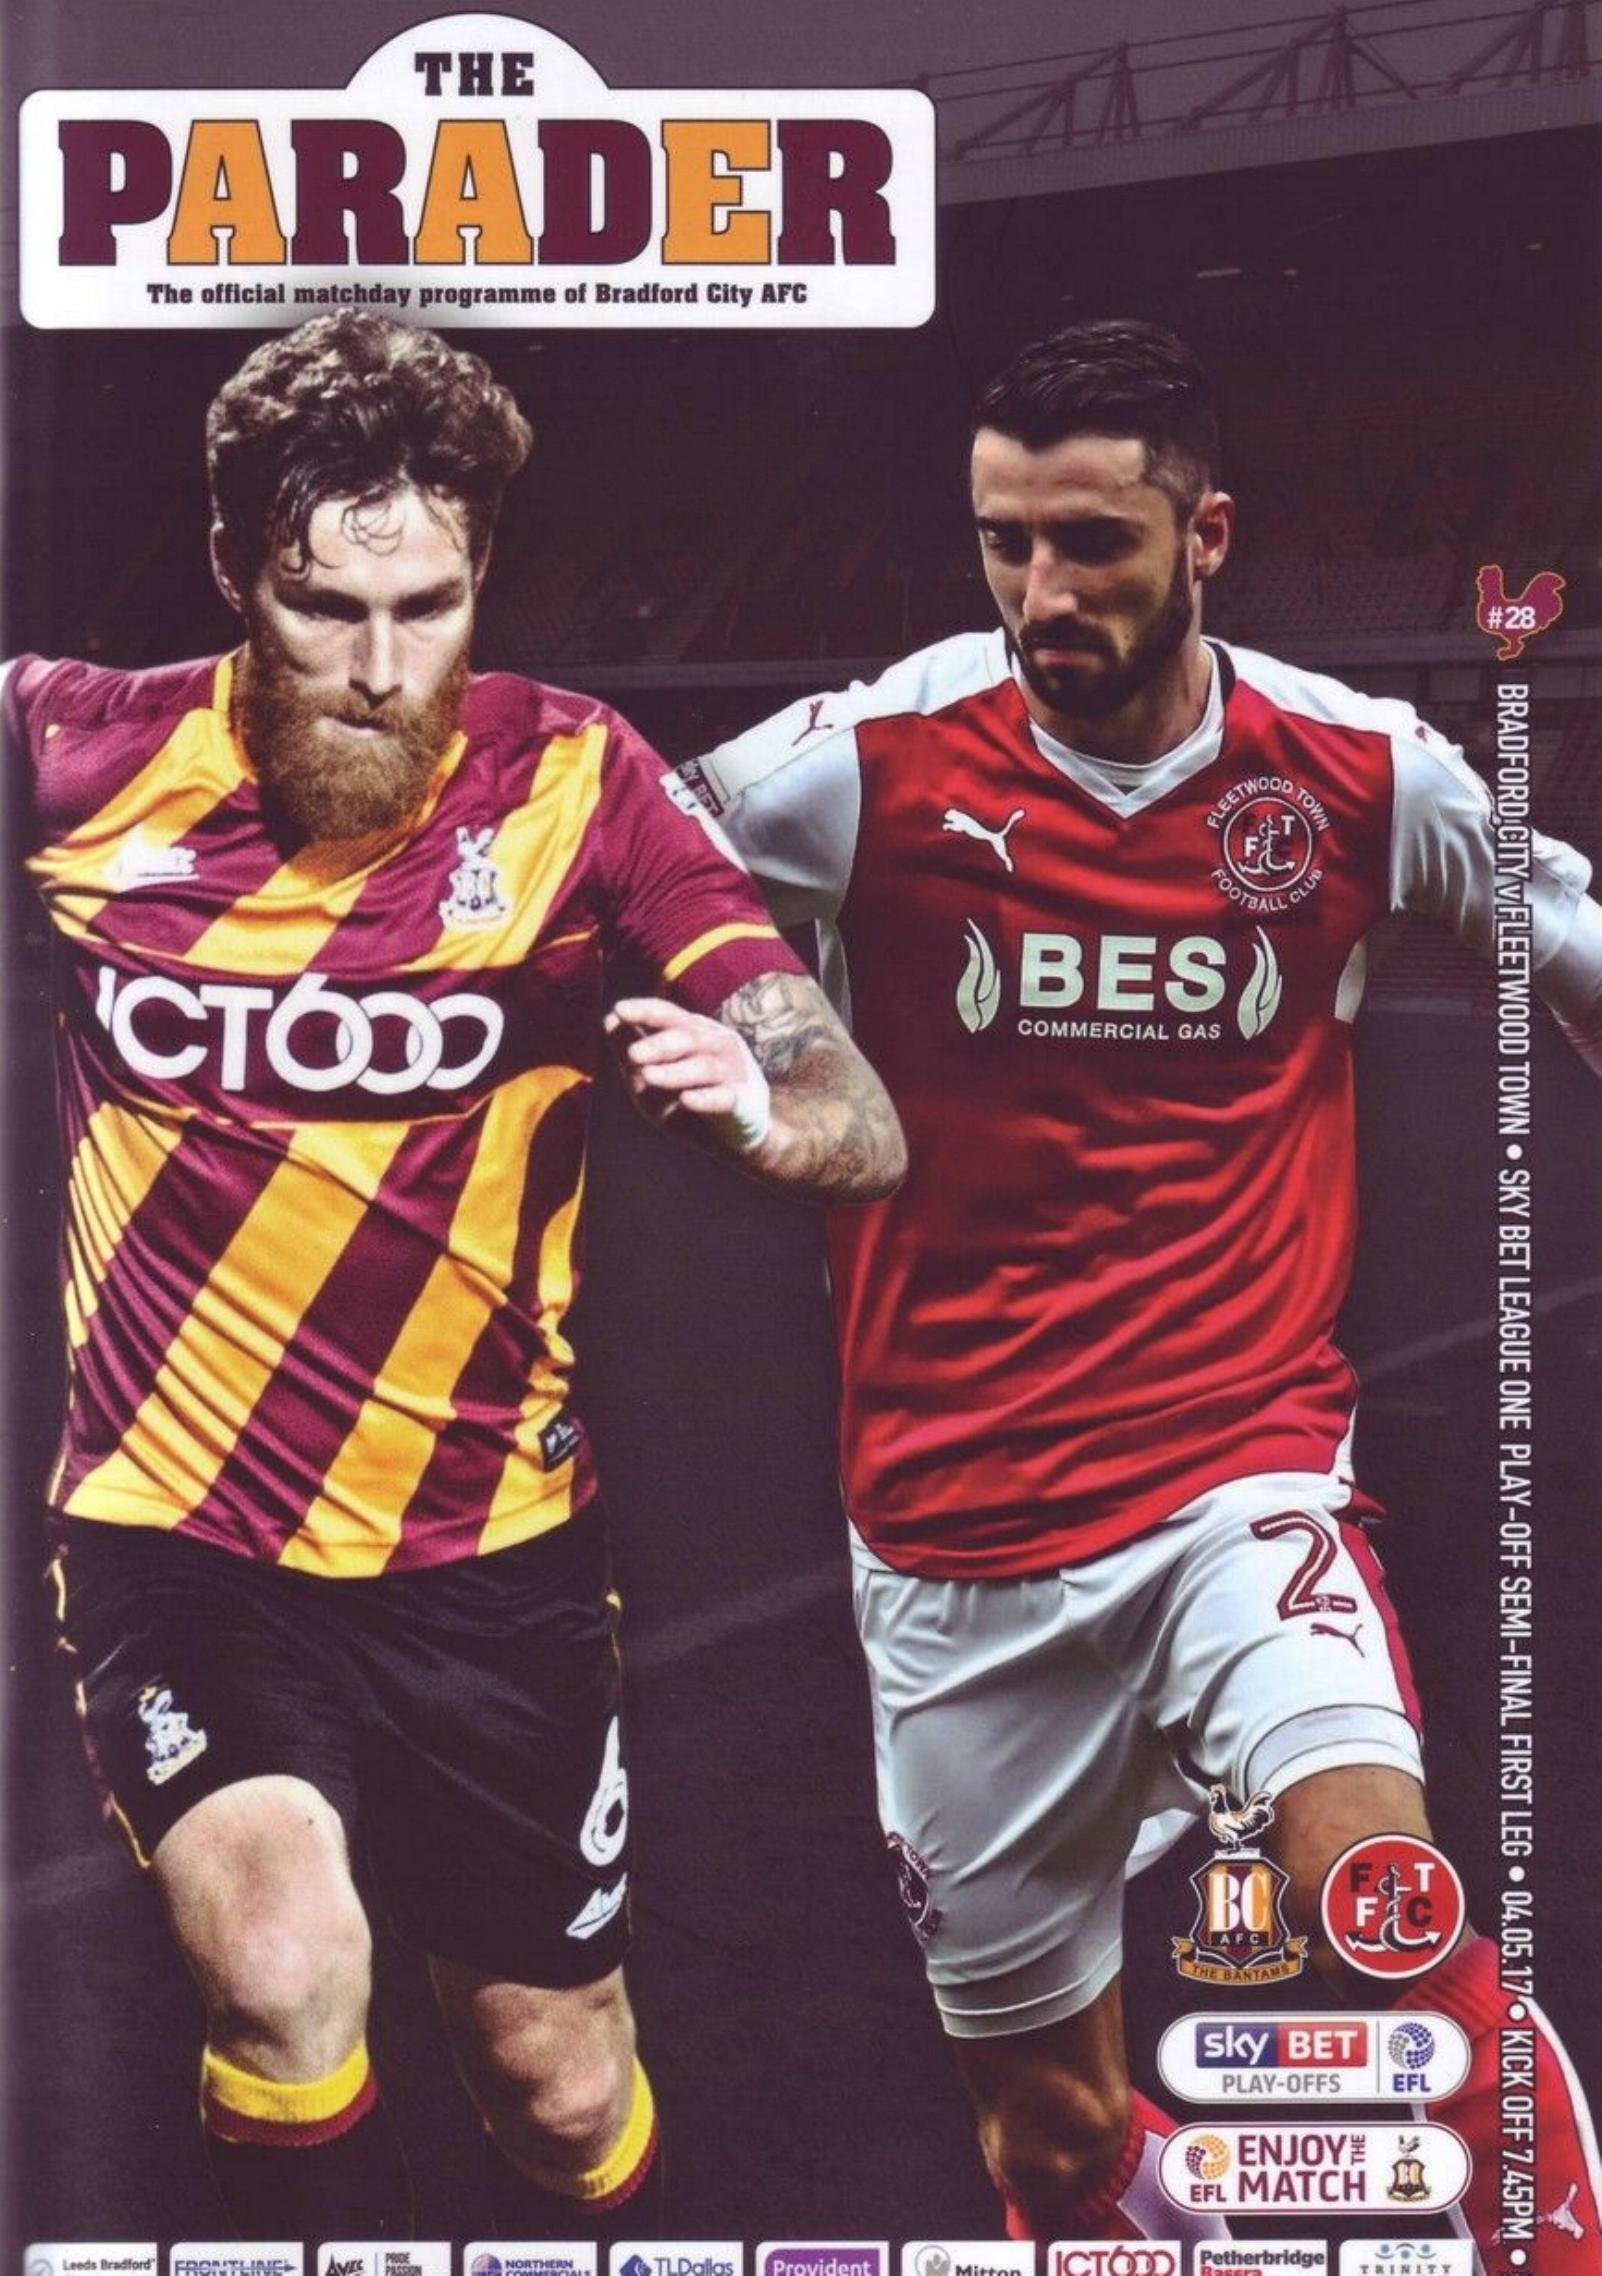 2017 PLAY-OFF SEMI-FINAL - BRADFORD CITY v FLEETWOOD TOWN